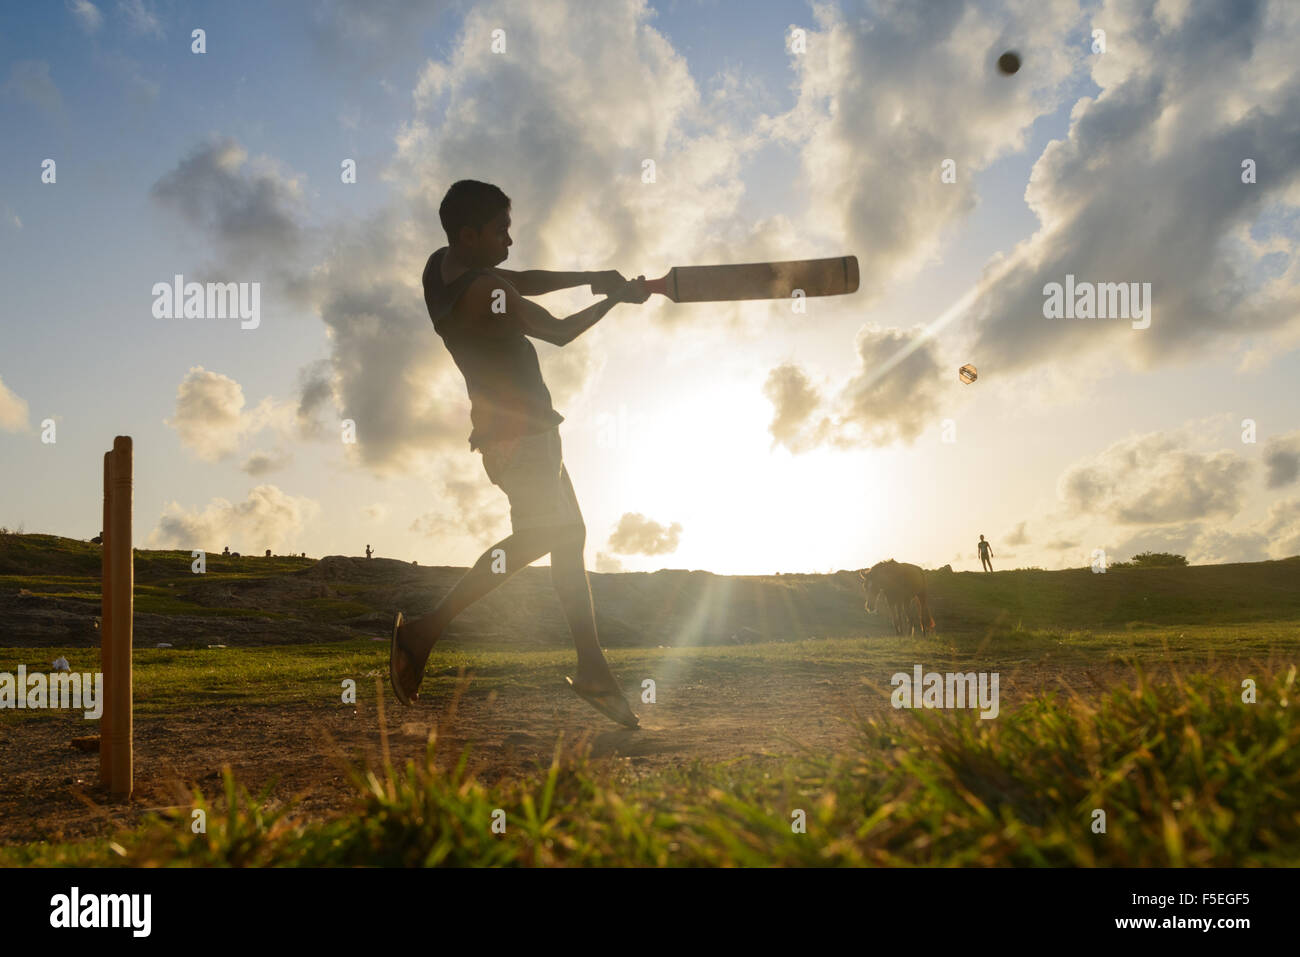 Silhouette d'un homme à jouer au cricket, Galle, Sri Lanka Photo Stock